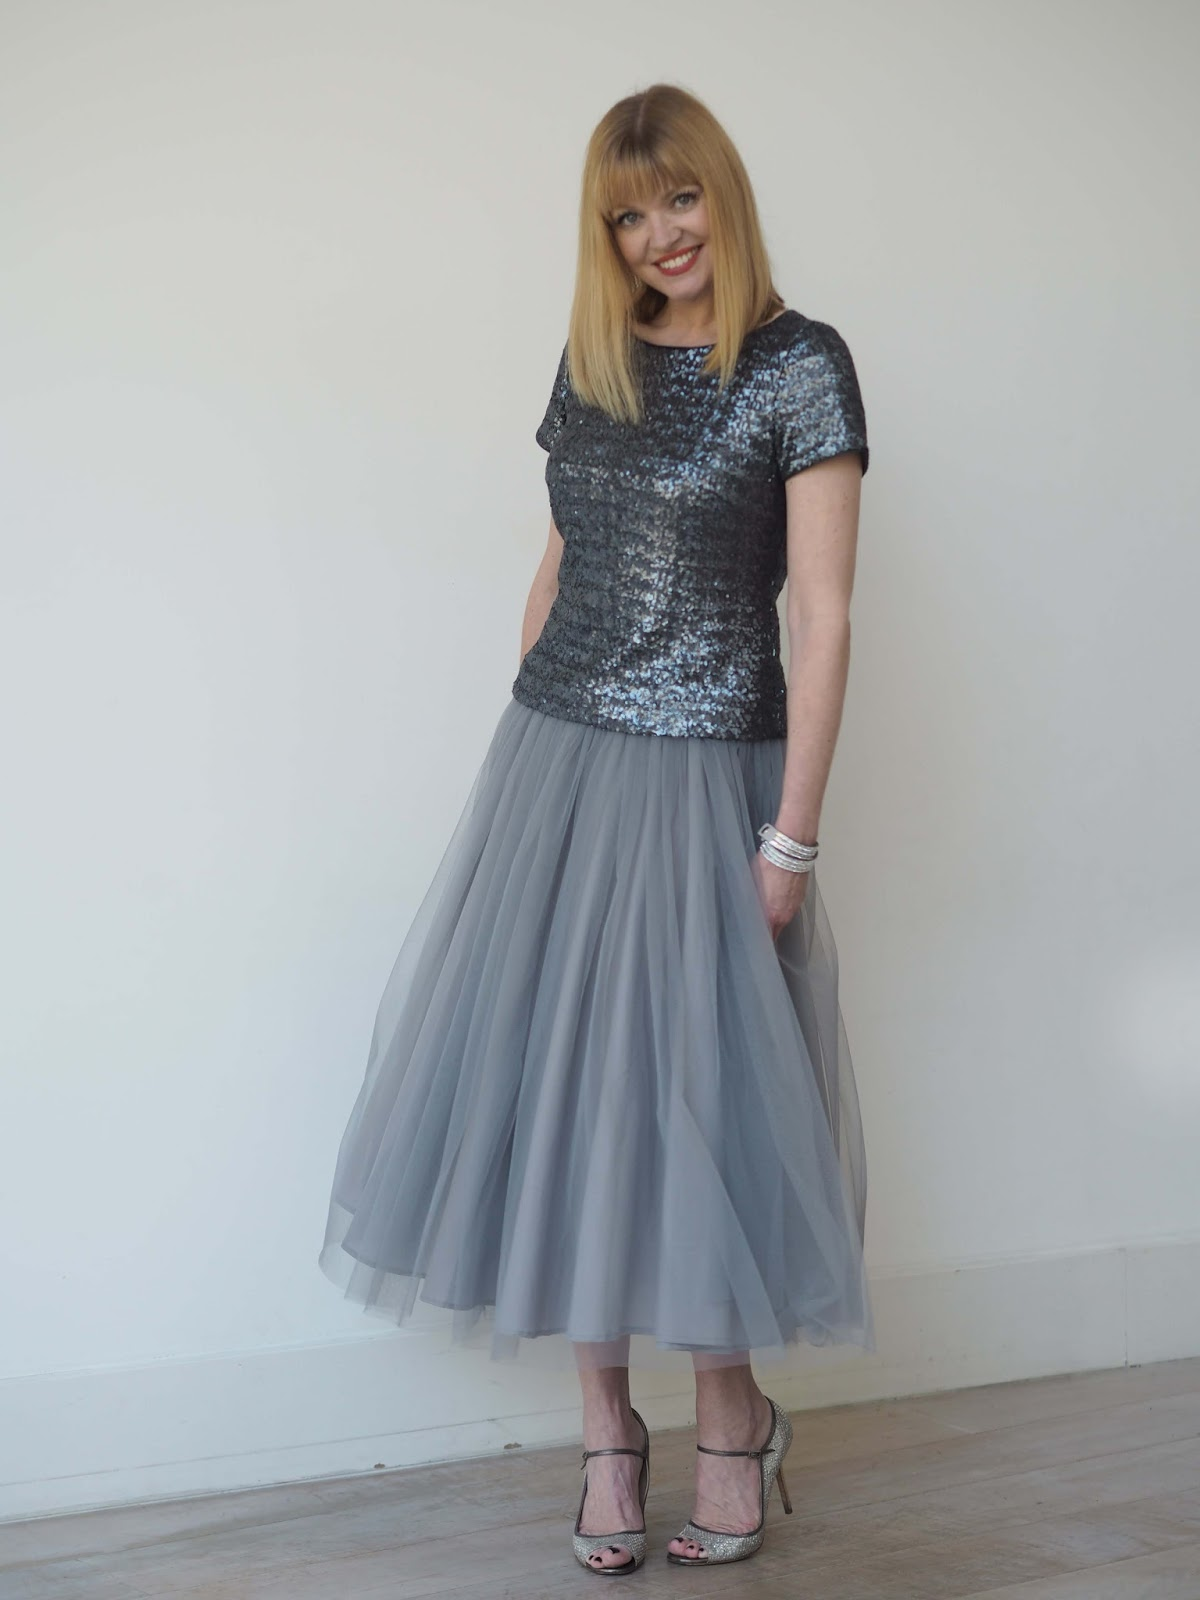 Grey tulle skirt with sequin top and Jimmy Choos, over 40 style